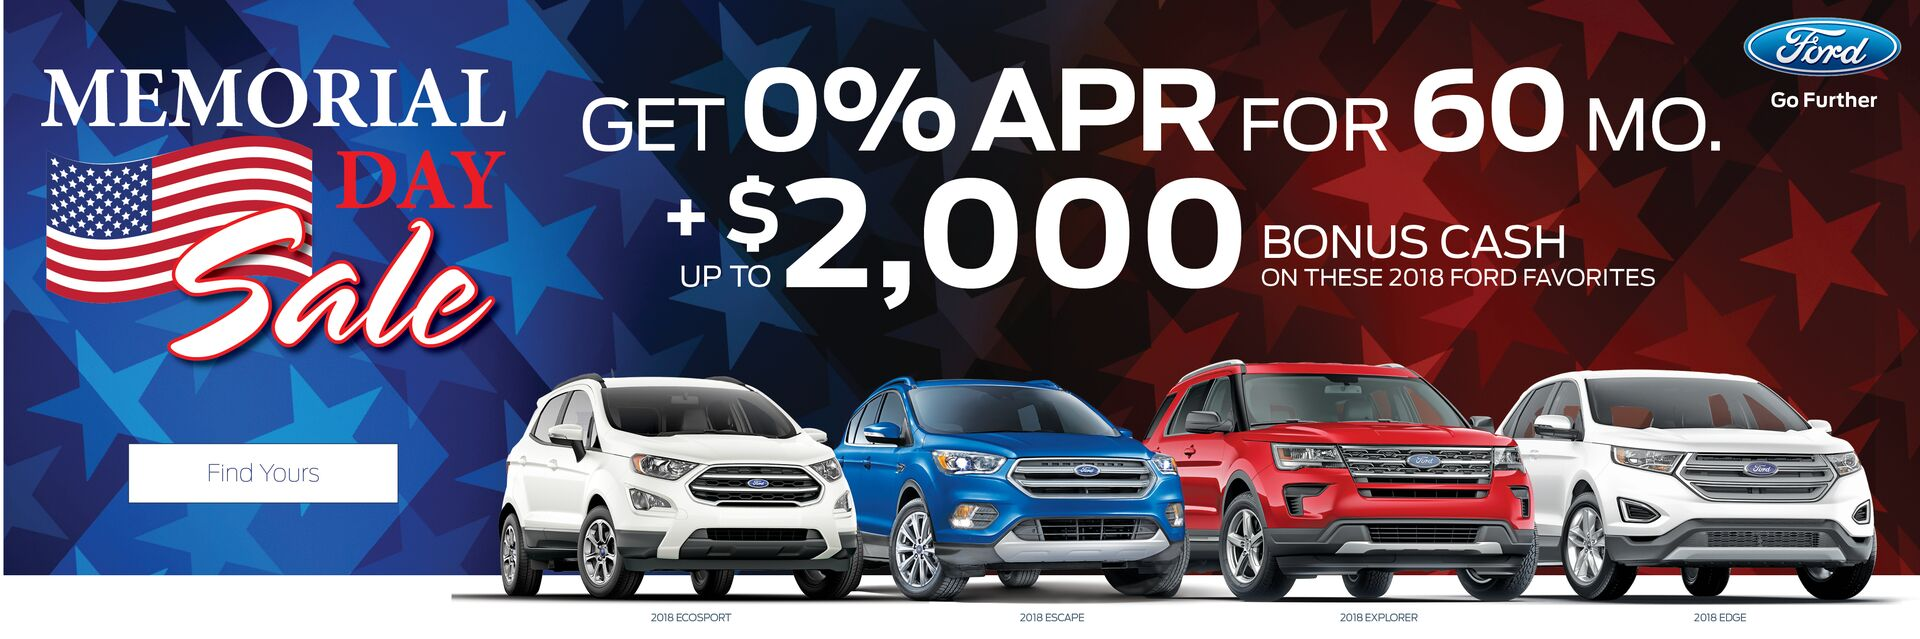 Great offers at Holiday Ford in Fond du Lac, WI